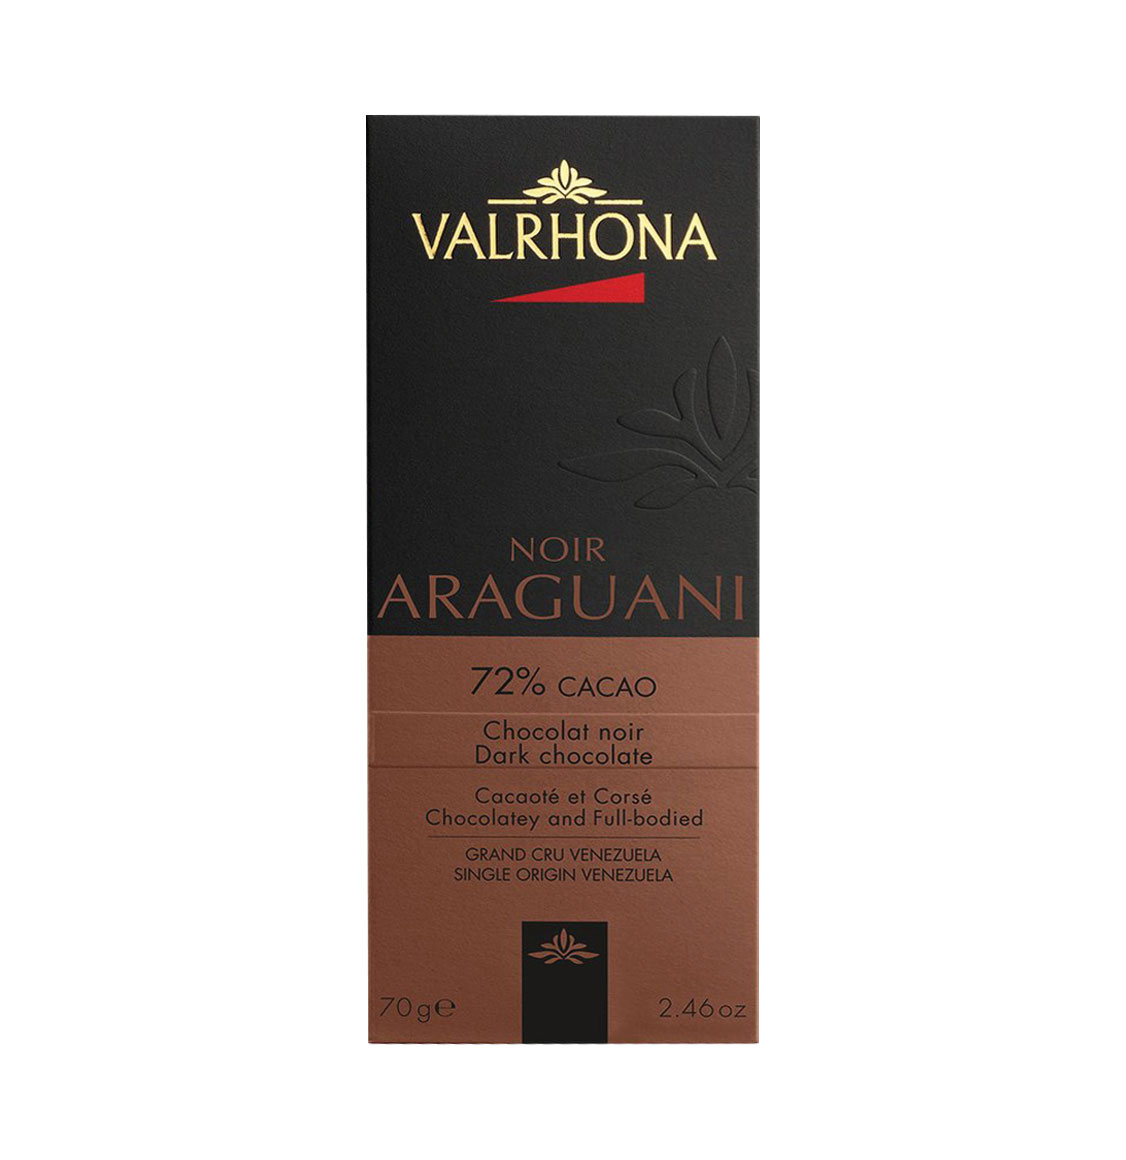 Valrhona Araguani Full Bodied Dark Chocolate 70g